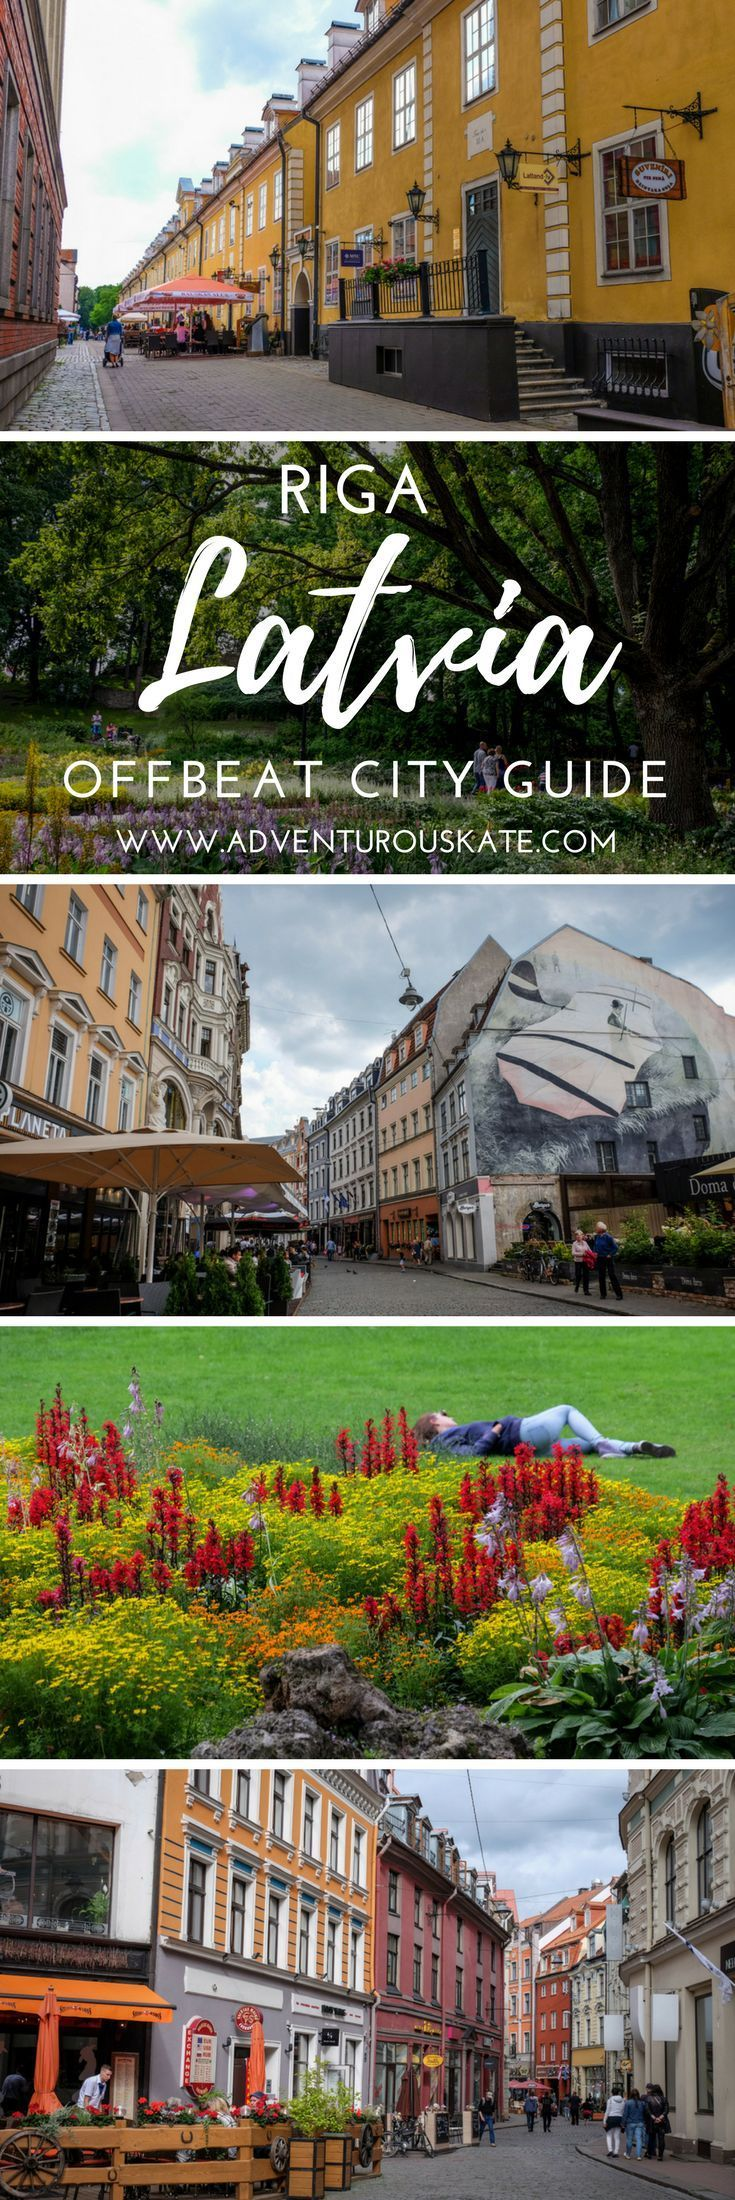 A travel guide to the most underrated city in Europe: Riga, Latvia. Explore this city during the summer among its Art Nouveau style buildings, go shopping for amber jewelry, or experience the thriving nightlife in this old town. Travel cheap in Europe as Riga features some of the most high-end restaurants for some of the lowest prices. Things to do in Riga. | Adventurous Kate: Solo Female Travel Blog #Riga #Latvia